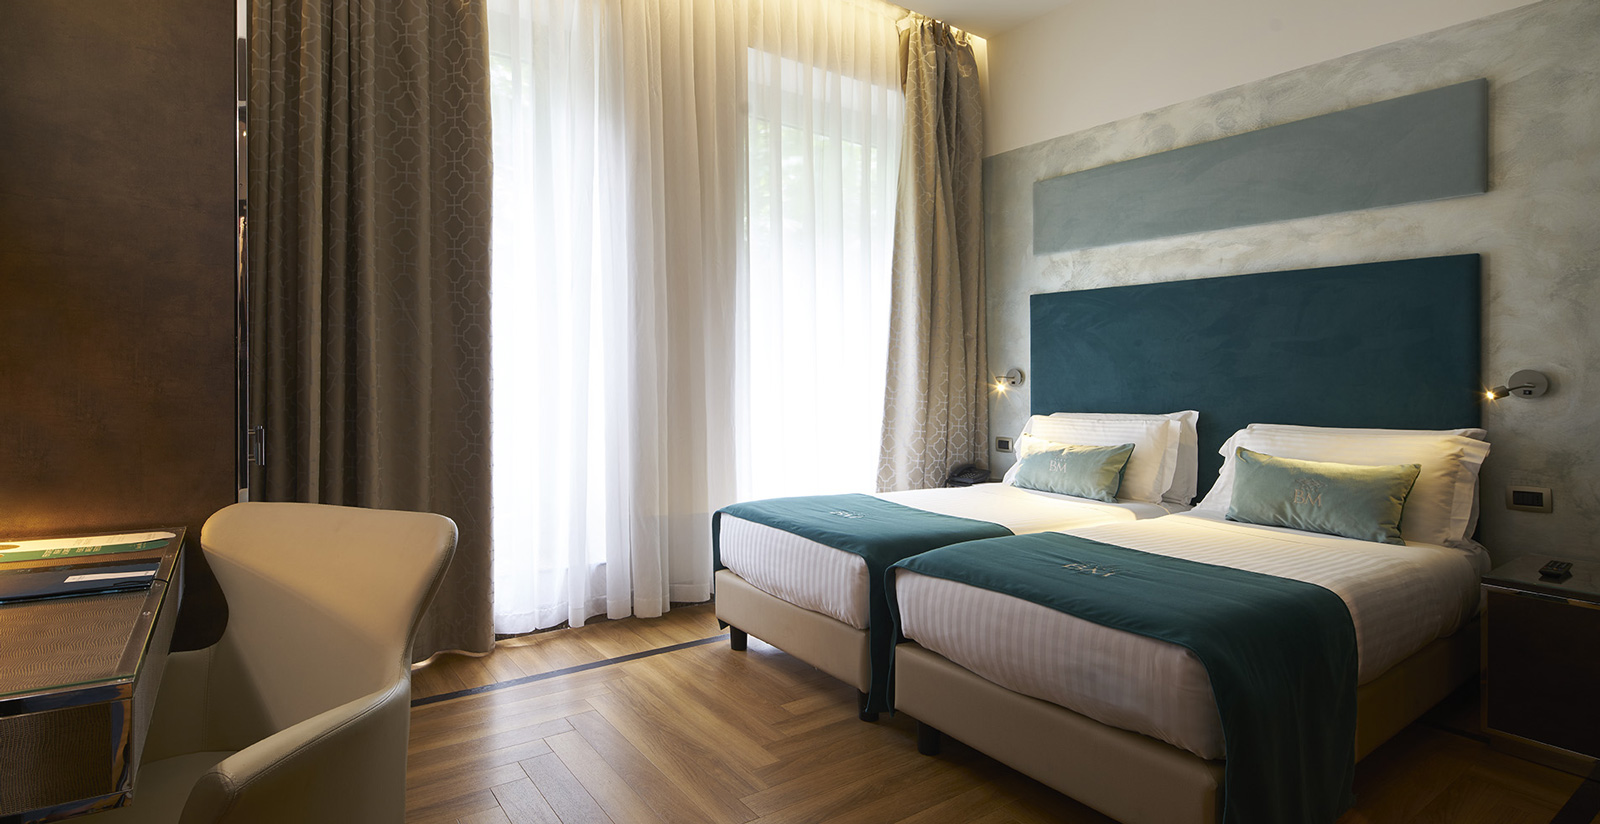 Hotel Design Milan Business Trips At The Bianca Maria Palace A Business Hotel In Milan